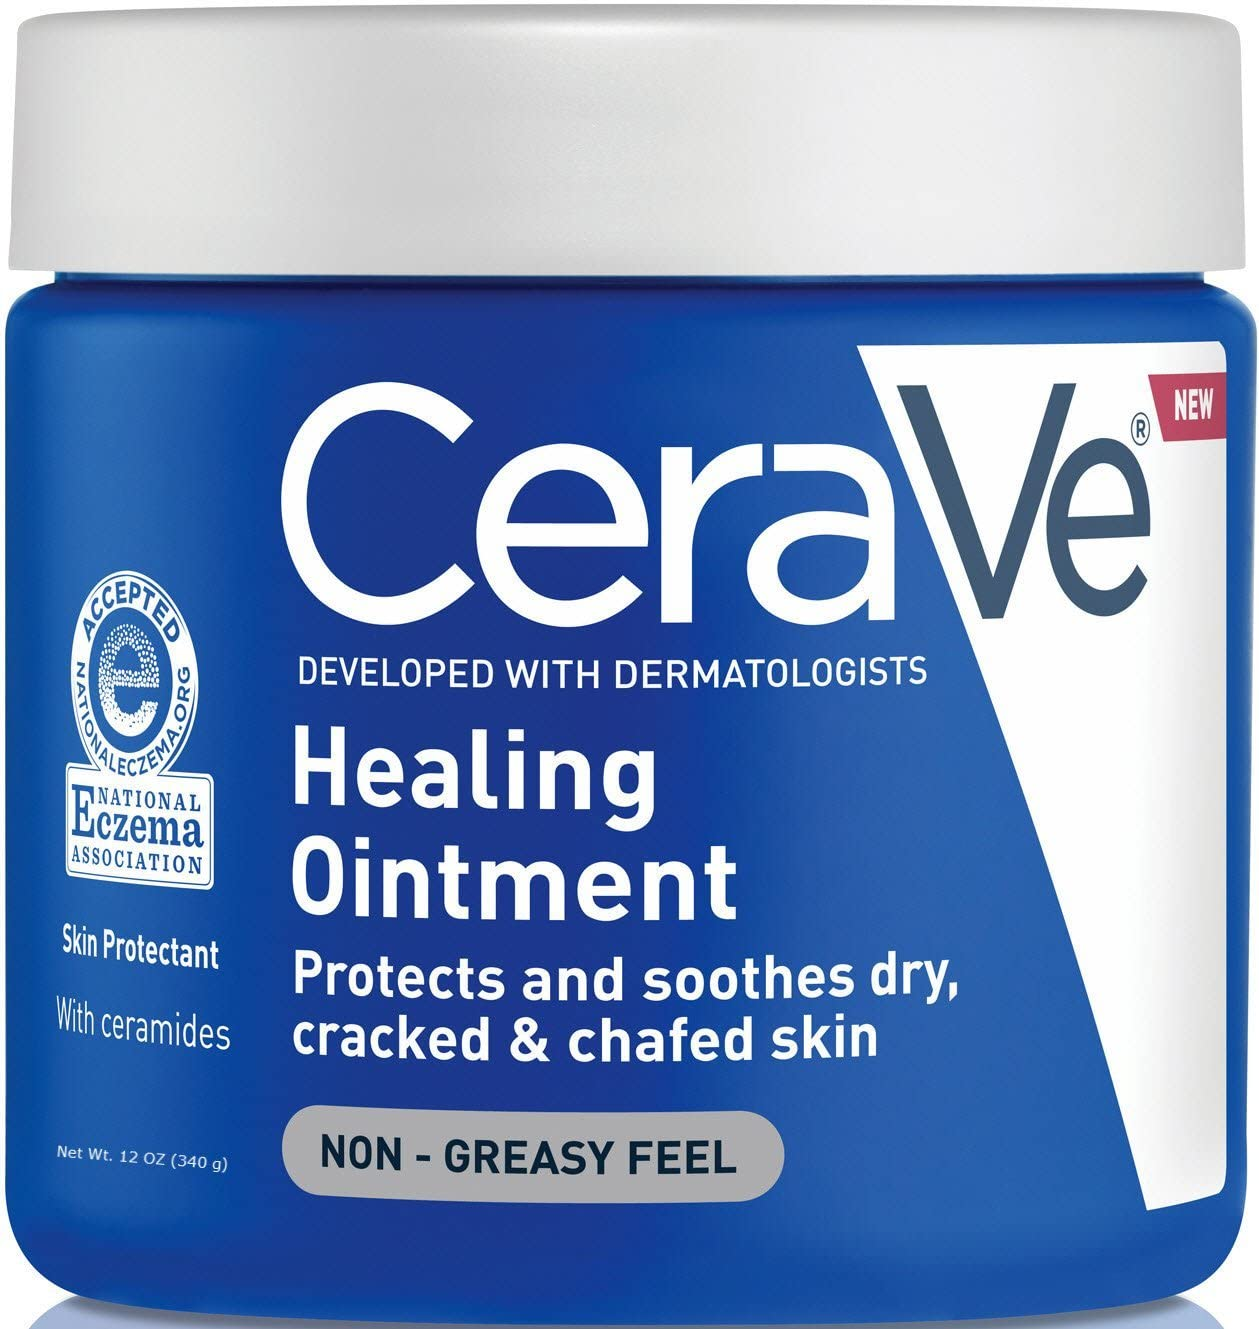 CeraVe Healing Ointment, 12 oz - 2pc